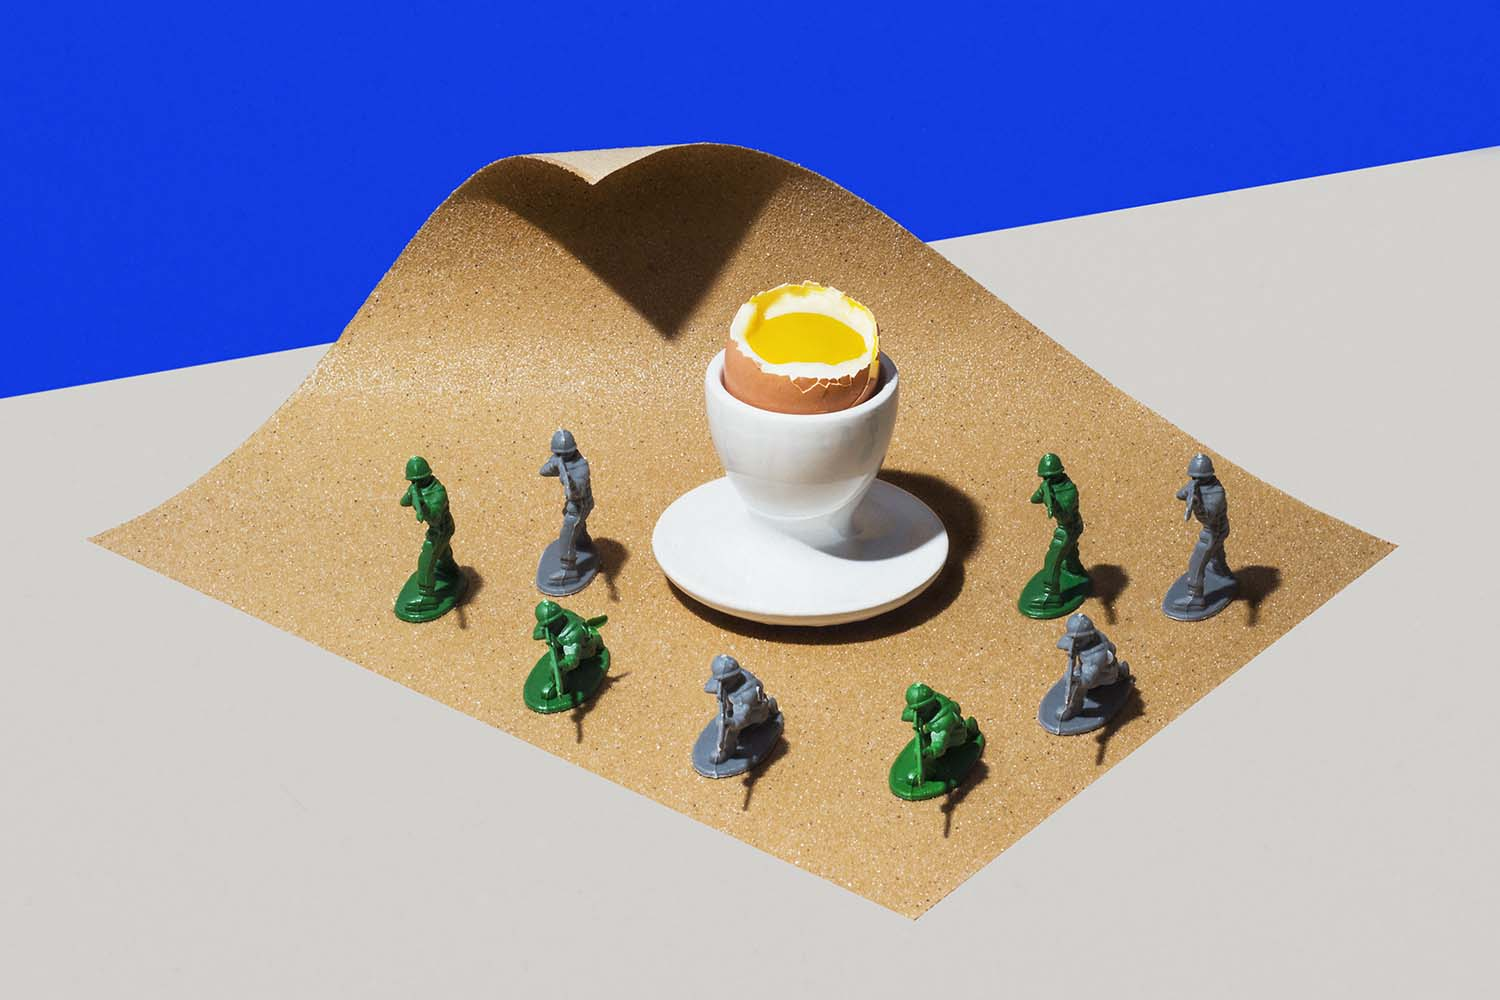 Food Puns by Grant Hegedus | World Photography Organisation